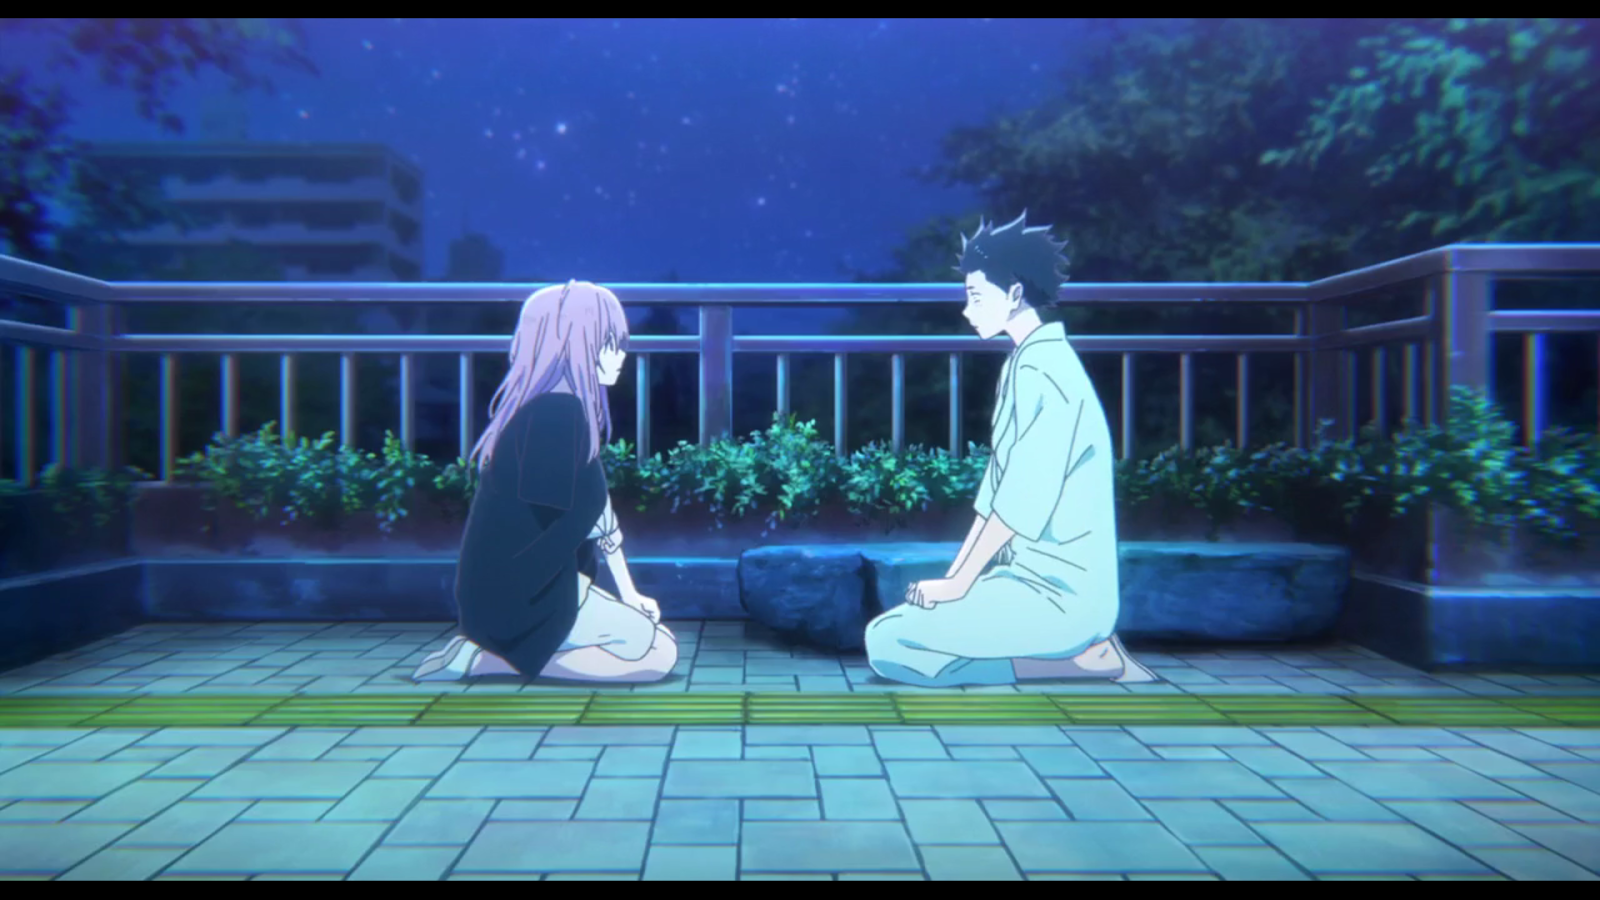 [39+] A Silent Voice Wallpapers on WallpaperSafari